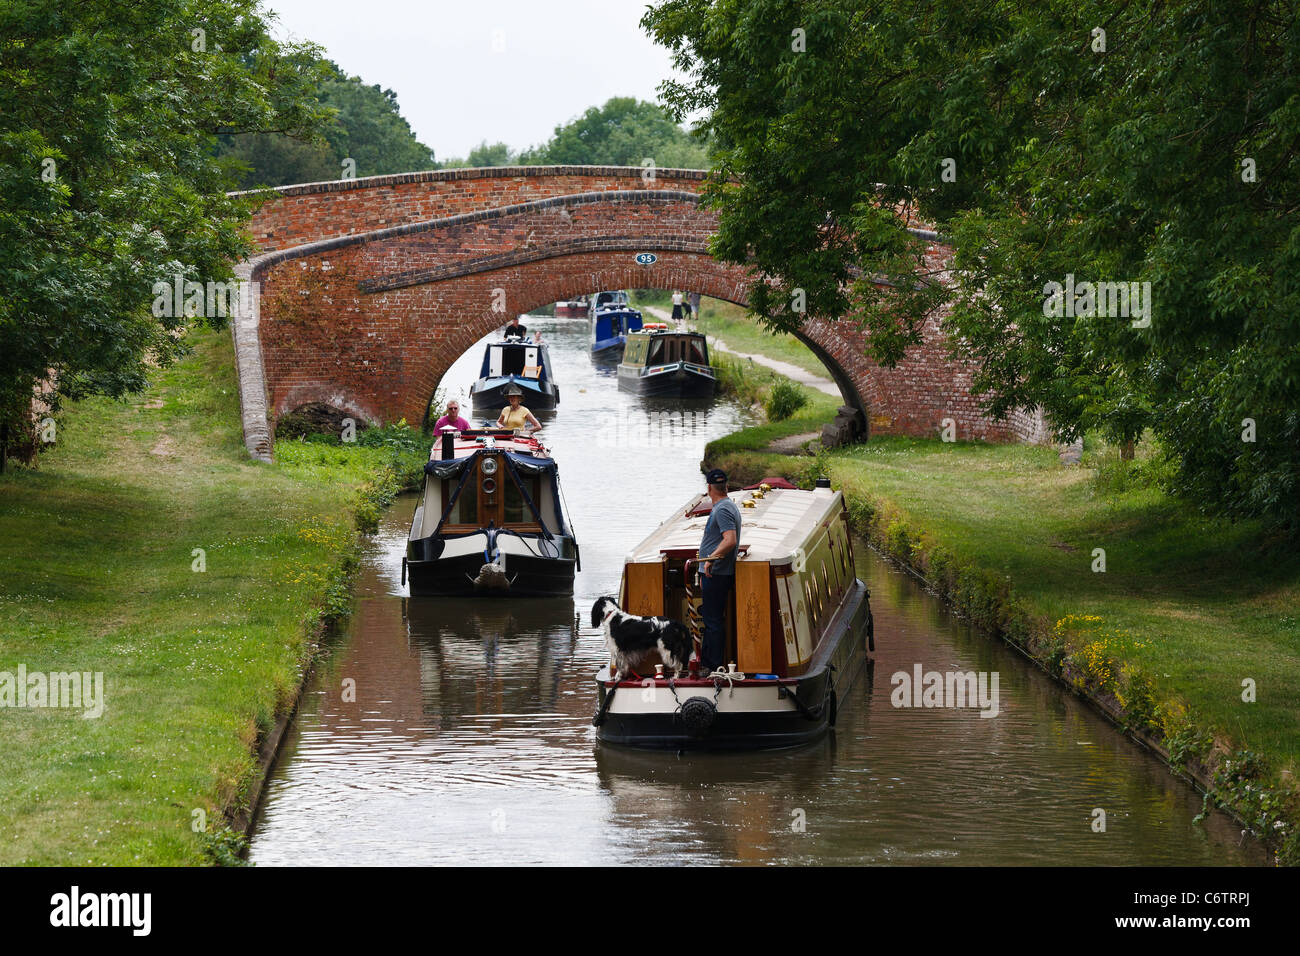 The Oxford Canal near Braunston, Northamptonshire - Stock Image